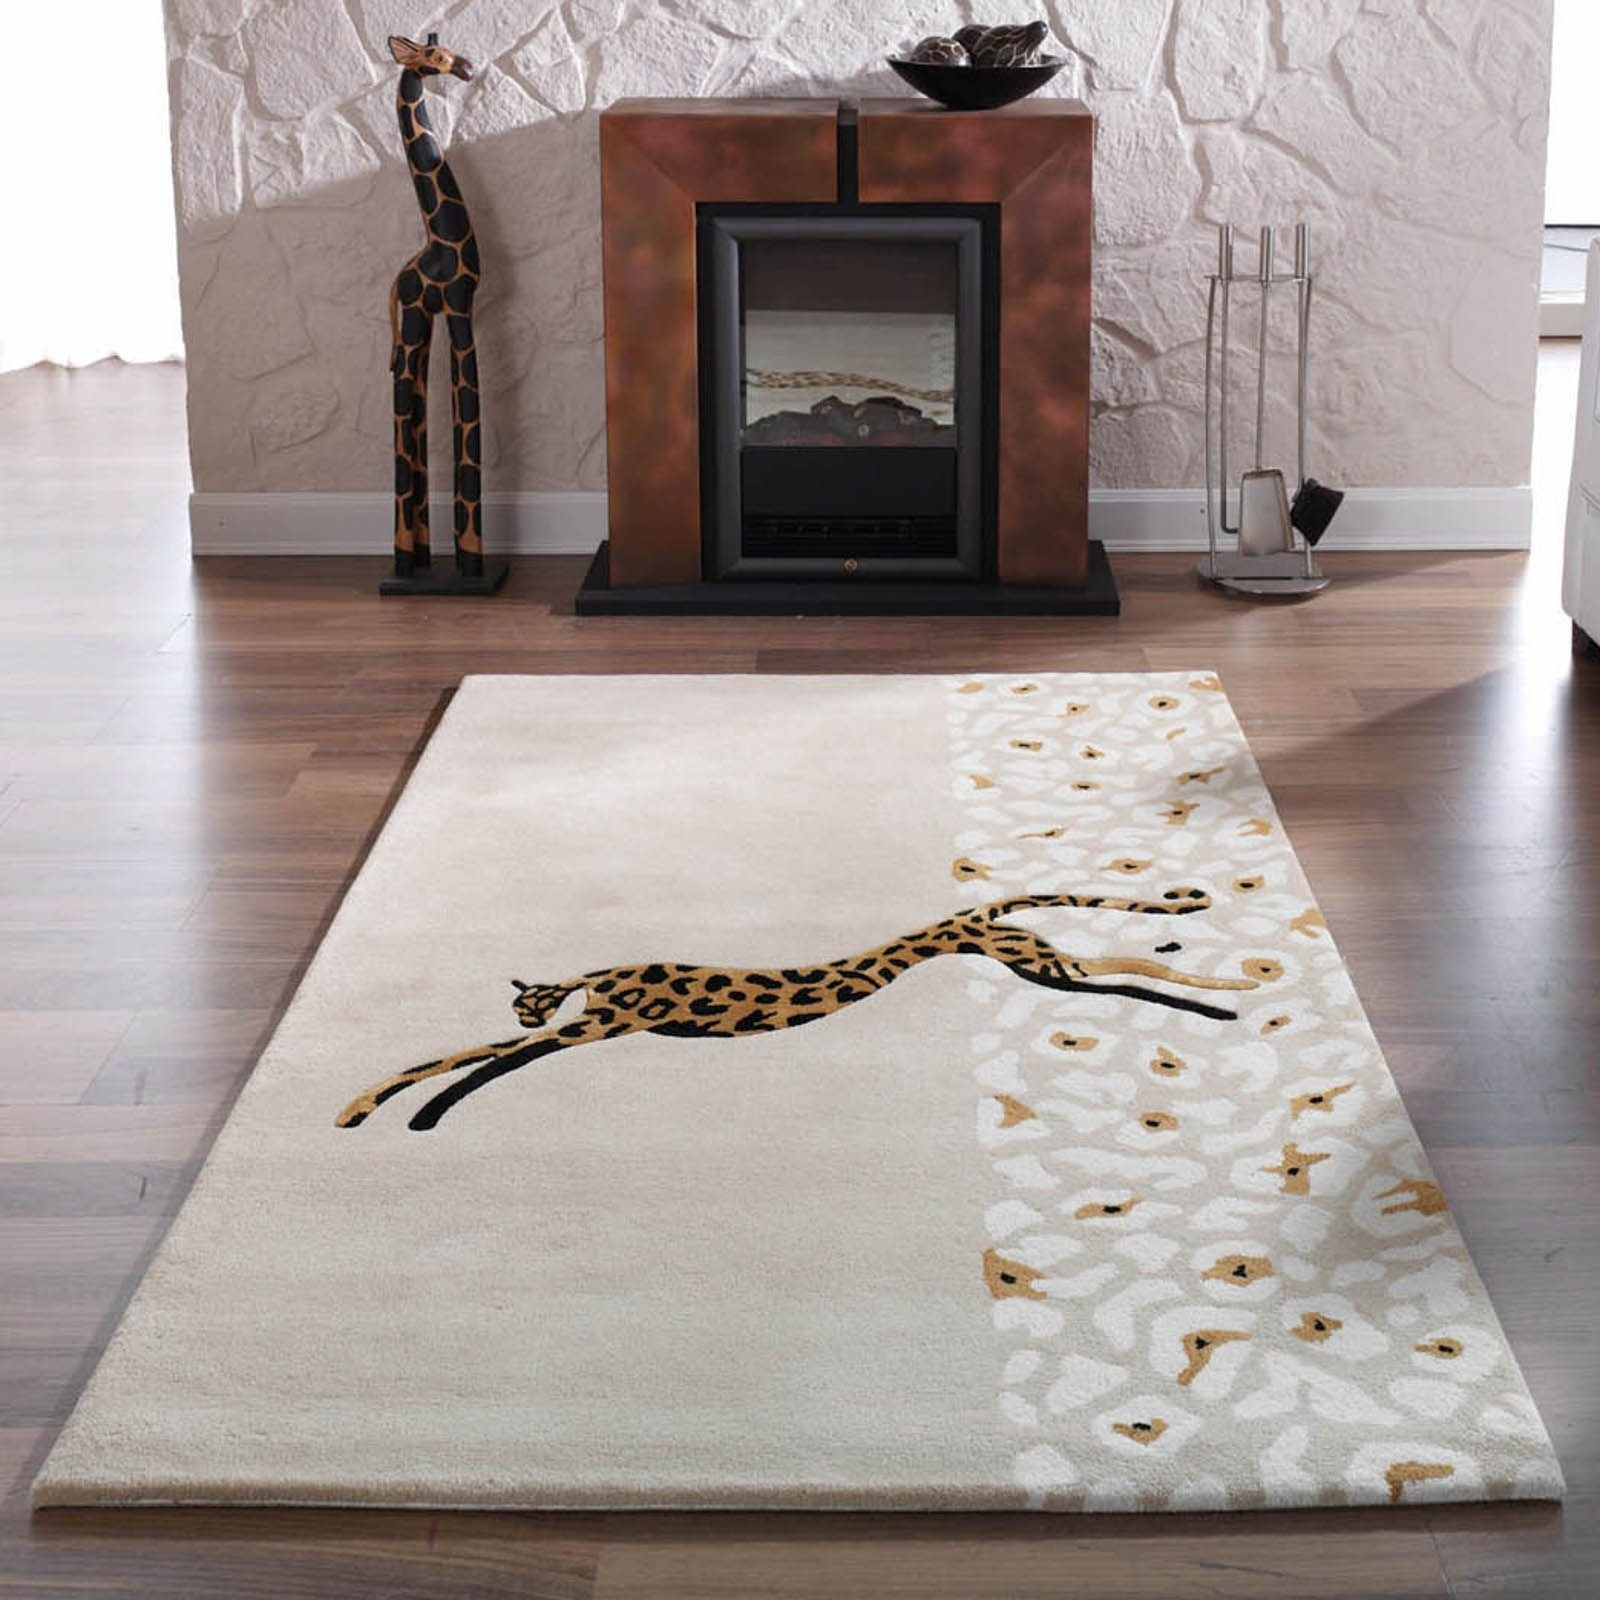 "Black Rugs for Bedroom Inspirational Kalahari Giraffe Rugs In Gold and Black120x180cm 5 7""x4 0"